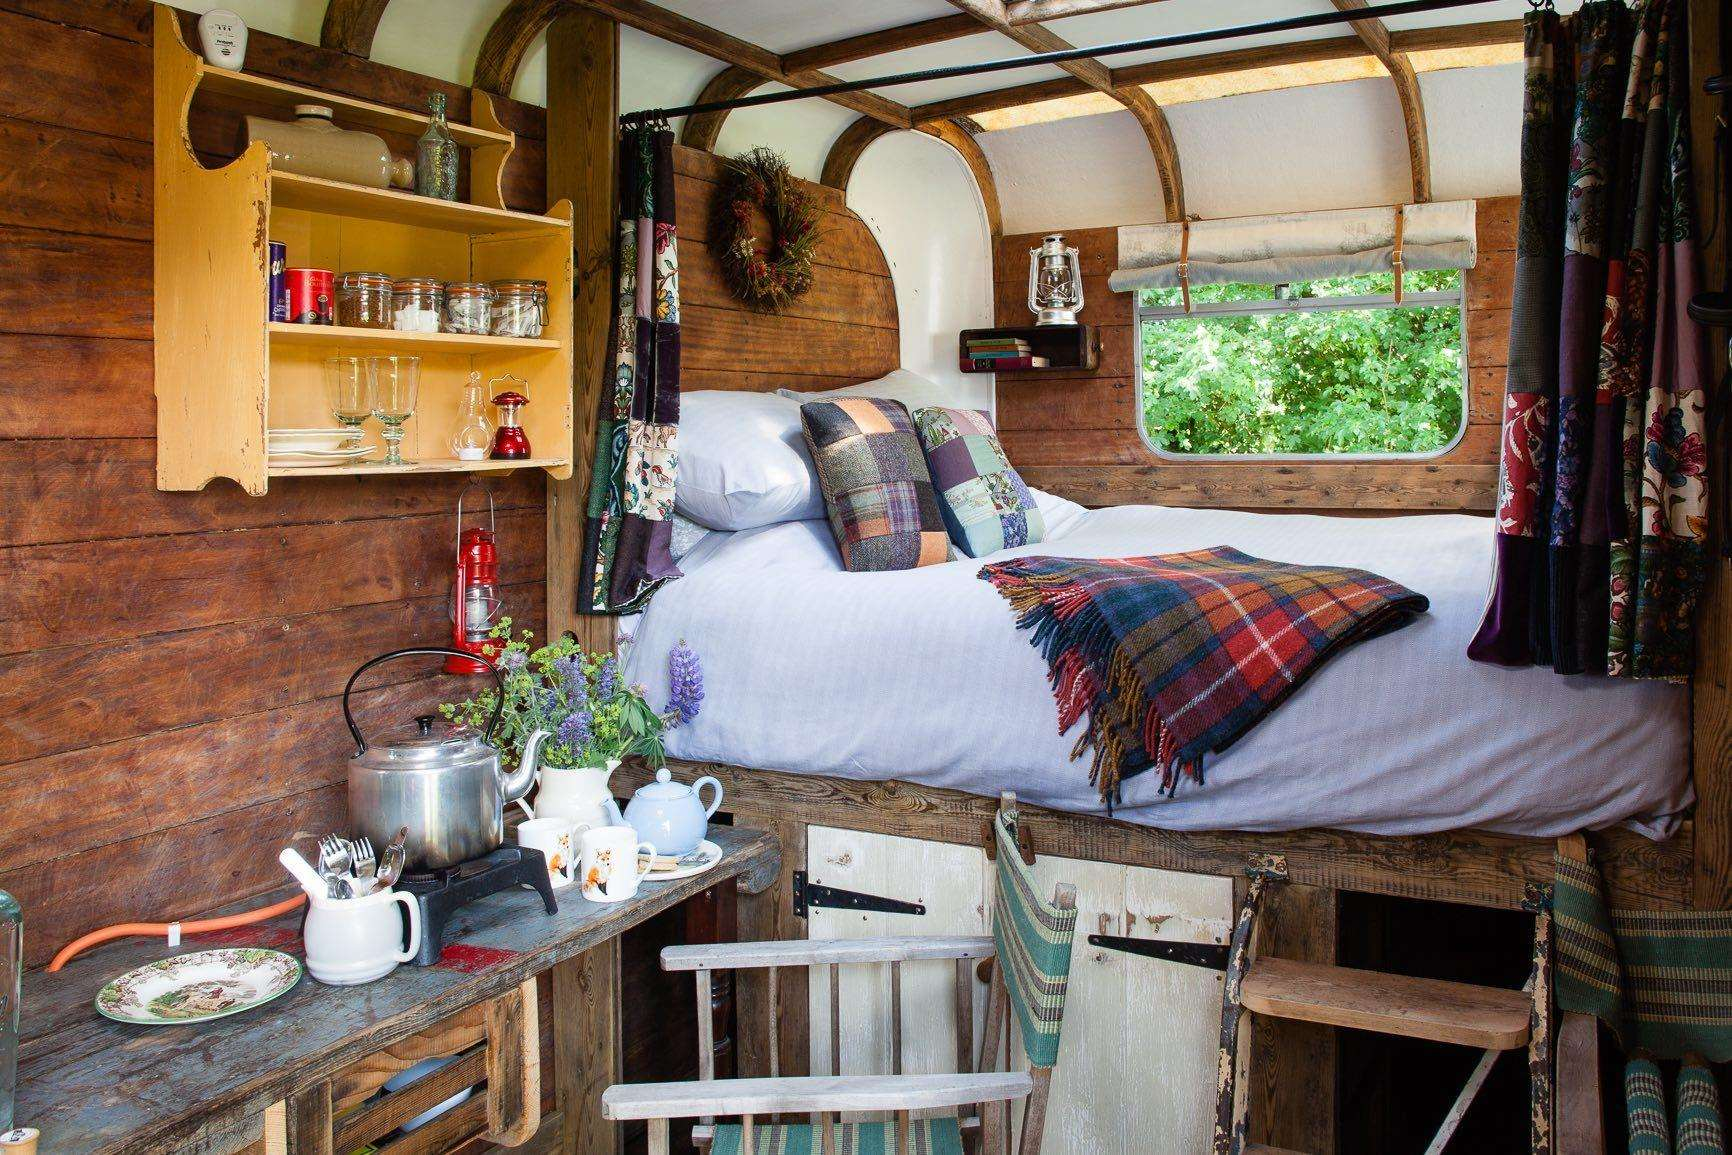 Enjoy a good nights sleep in this converted horse box